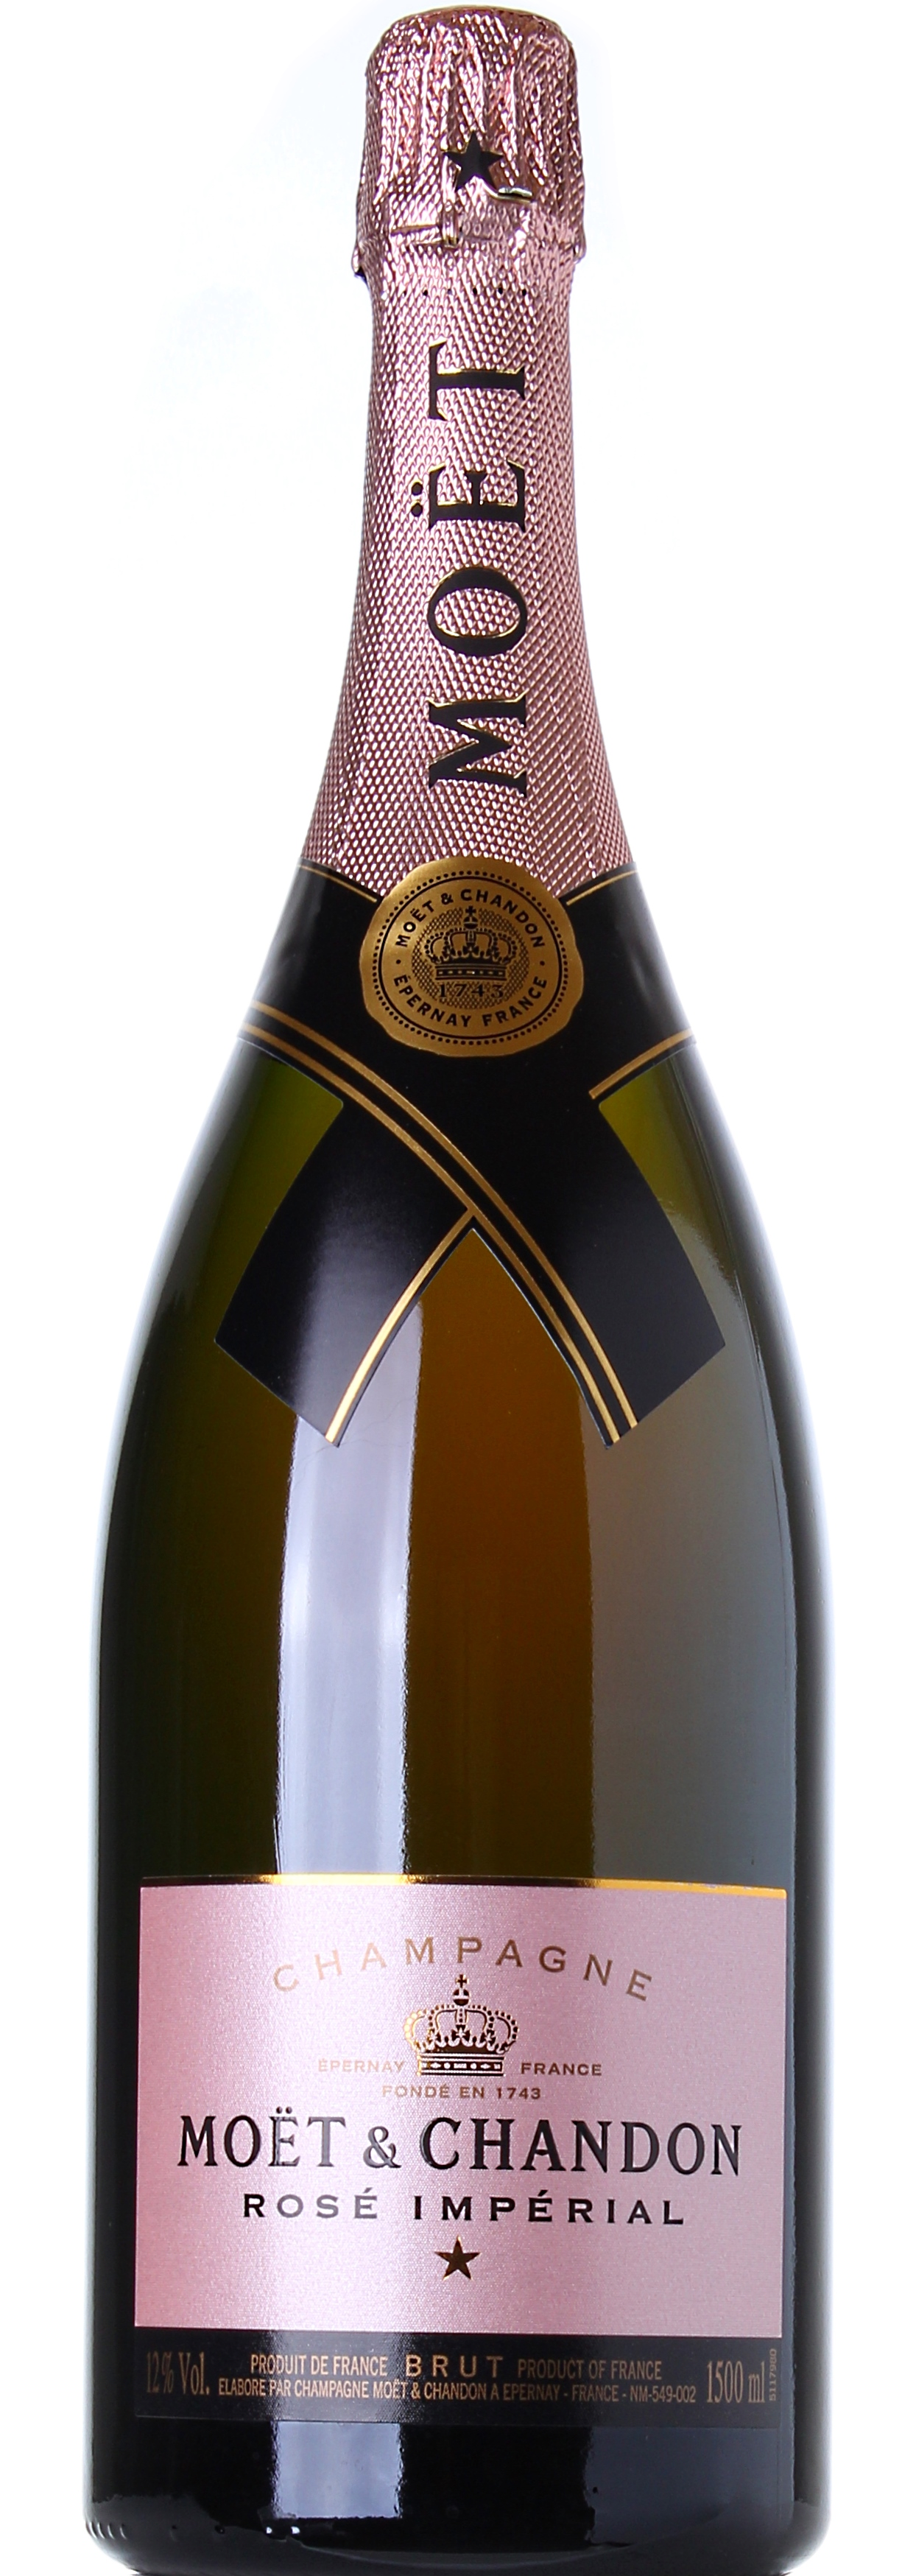 MOET & CHANDON CHAMPAGNE ROSE' IMPERIAL MAGNUM